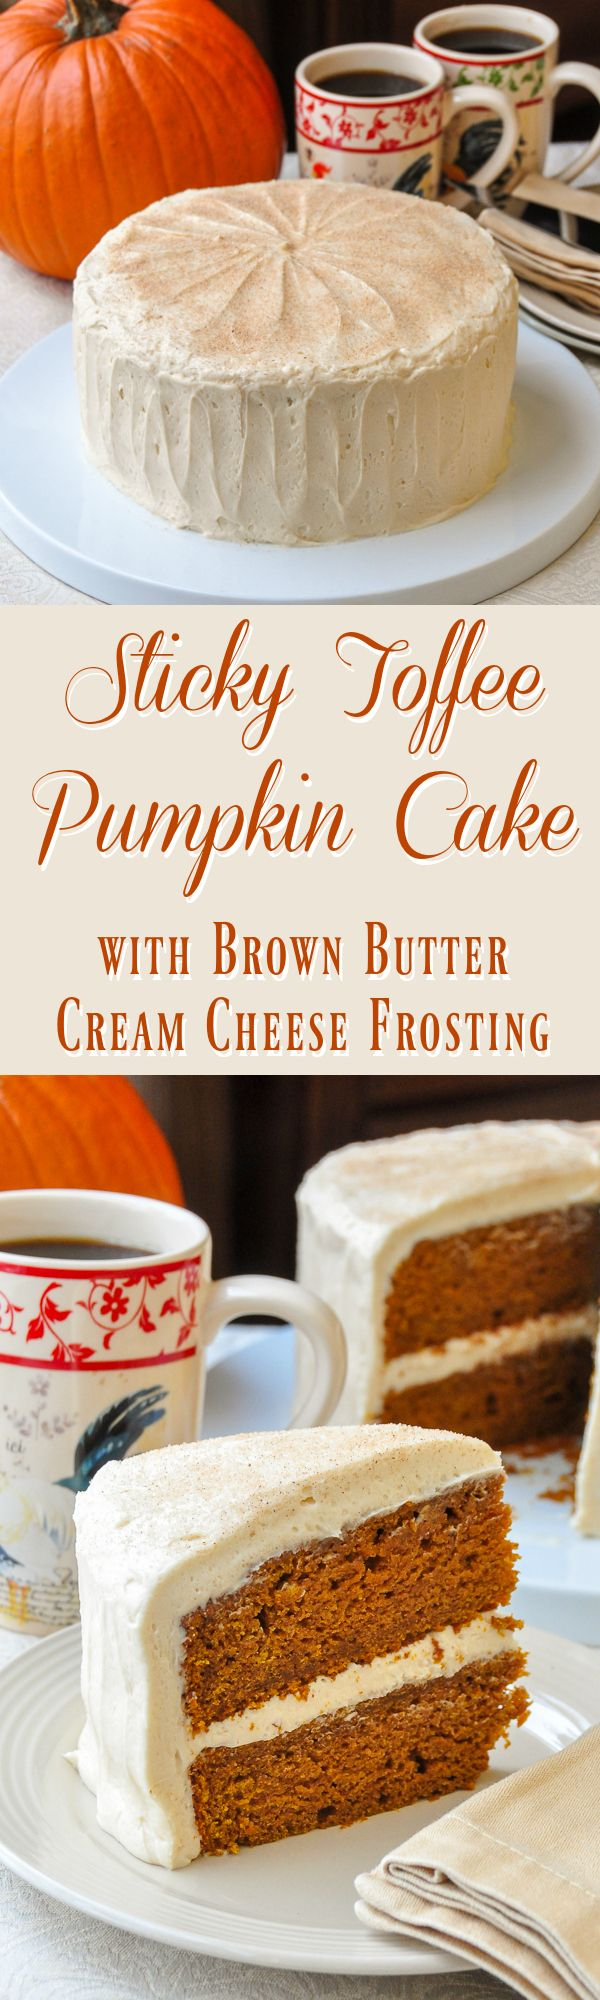 Sticky Toffee Pumpkin Cake with Brown Butter Cream Cheese Frosting - inspired by my favourite English dessert, this cake has become a seasonal favourite but can be made at any time for year using canned pumpkin puree.